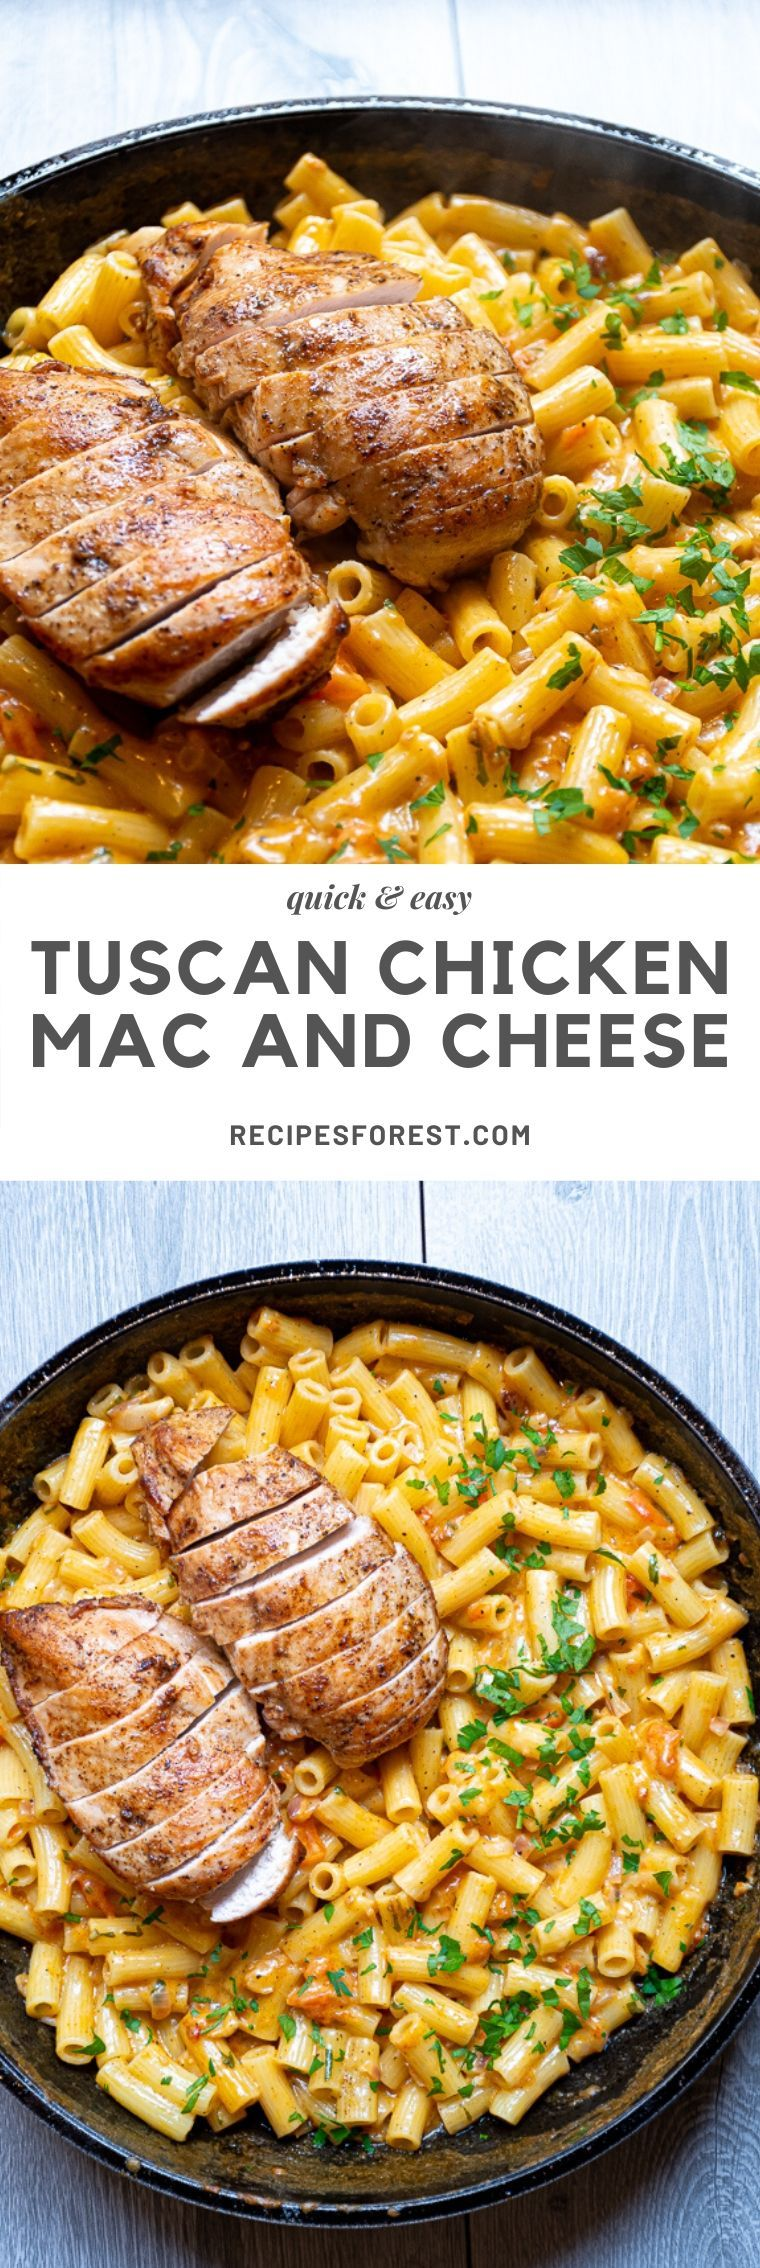 The BEST Tuscan Chicken Mac and Cheese (30Min) | Recipes Forest